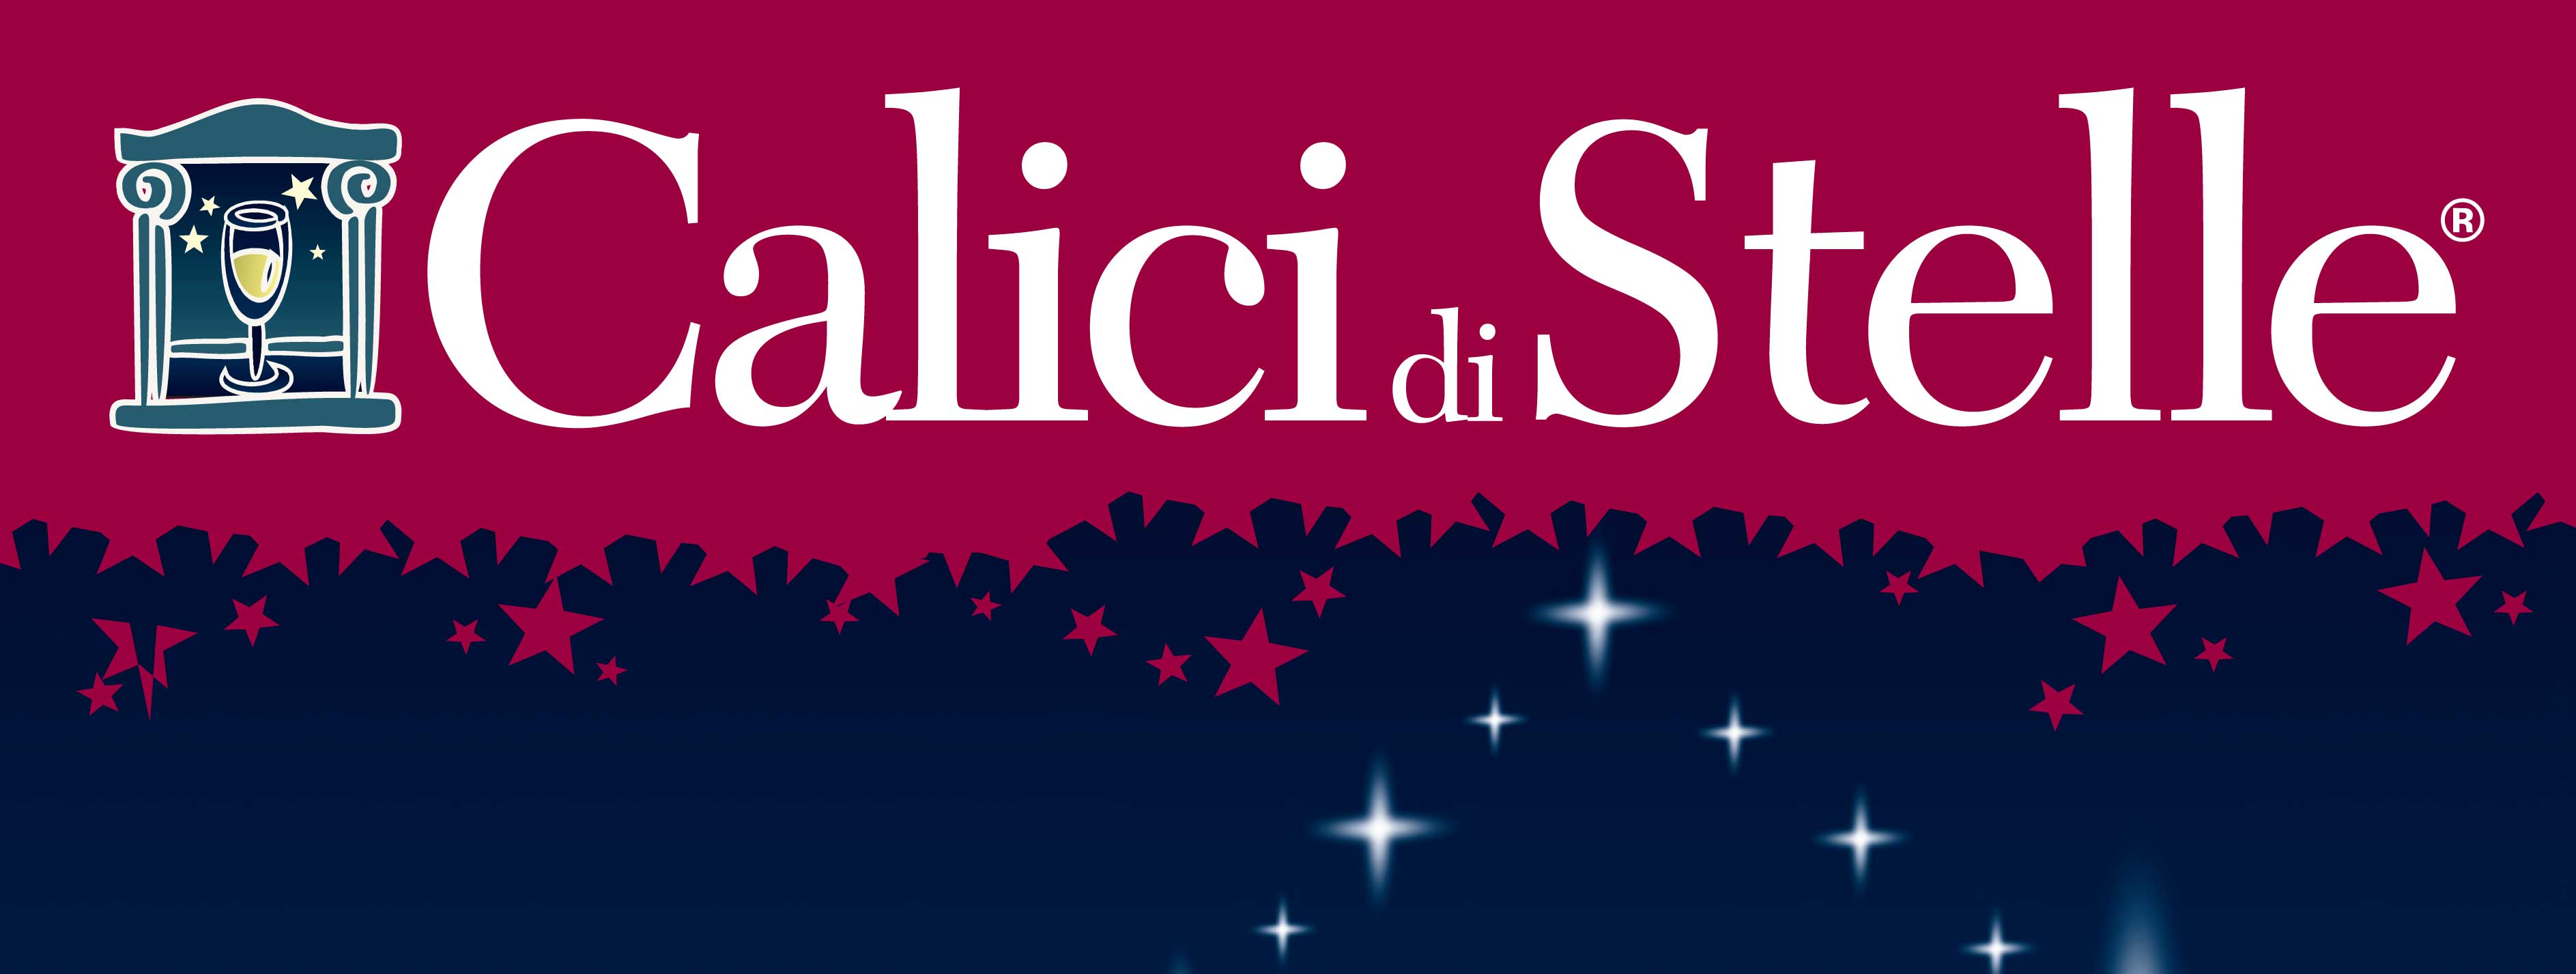 Calici di Stelle 2017 in Valle d'Aosta